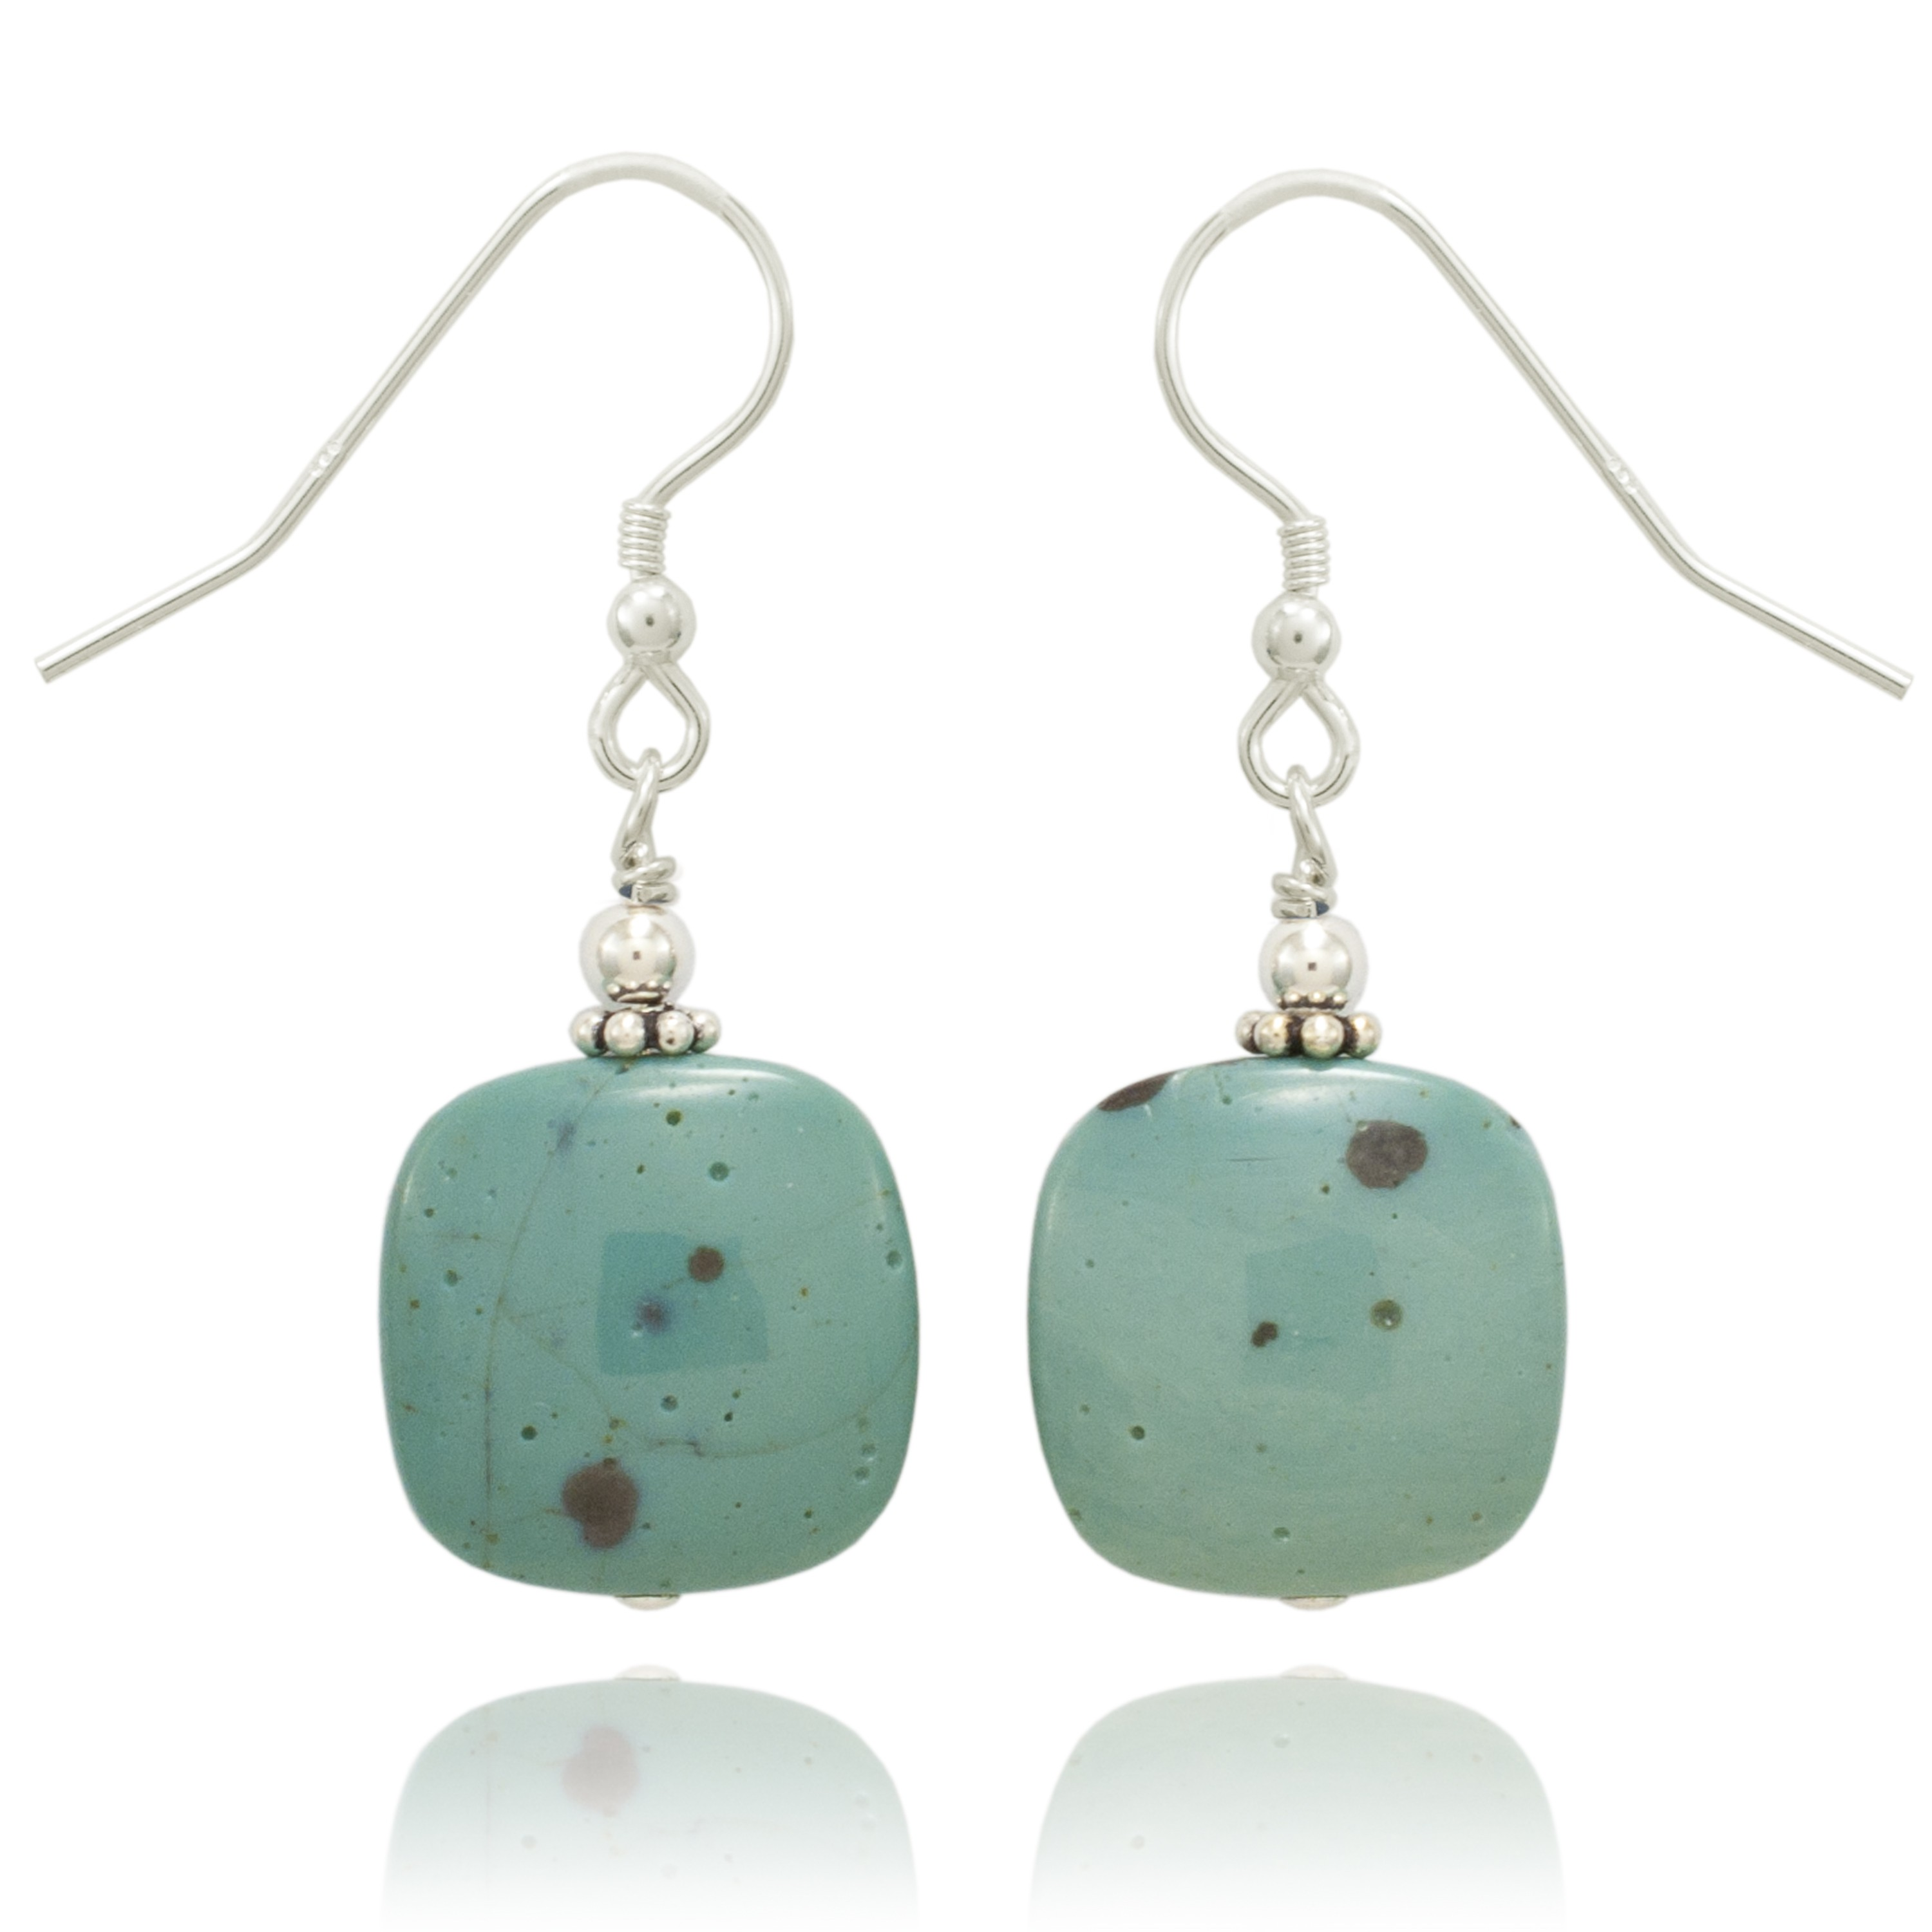 Leland Blue Stone Teal Blue Square Style Earrings